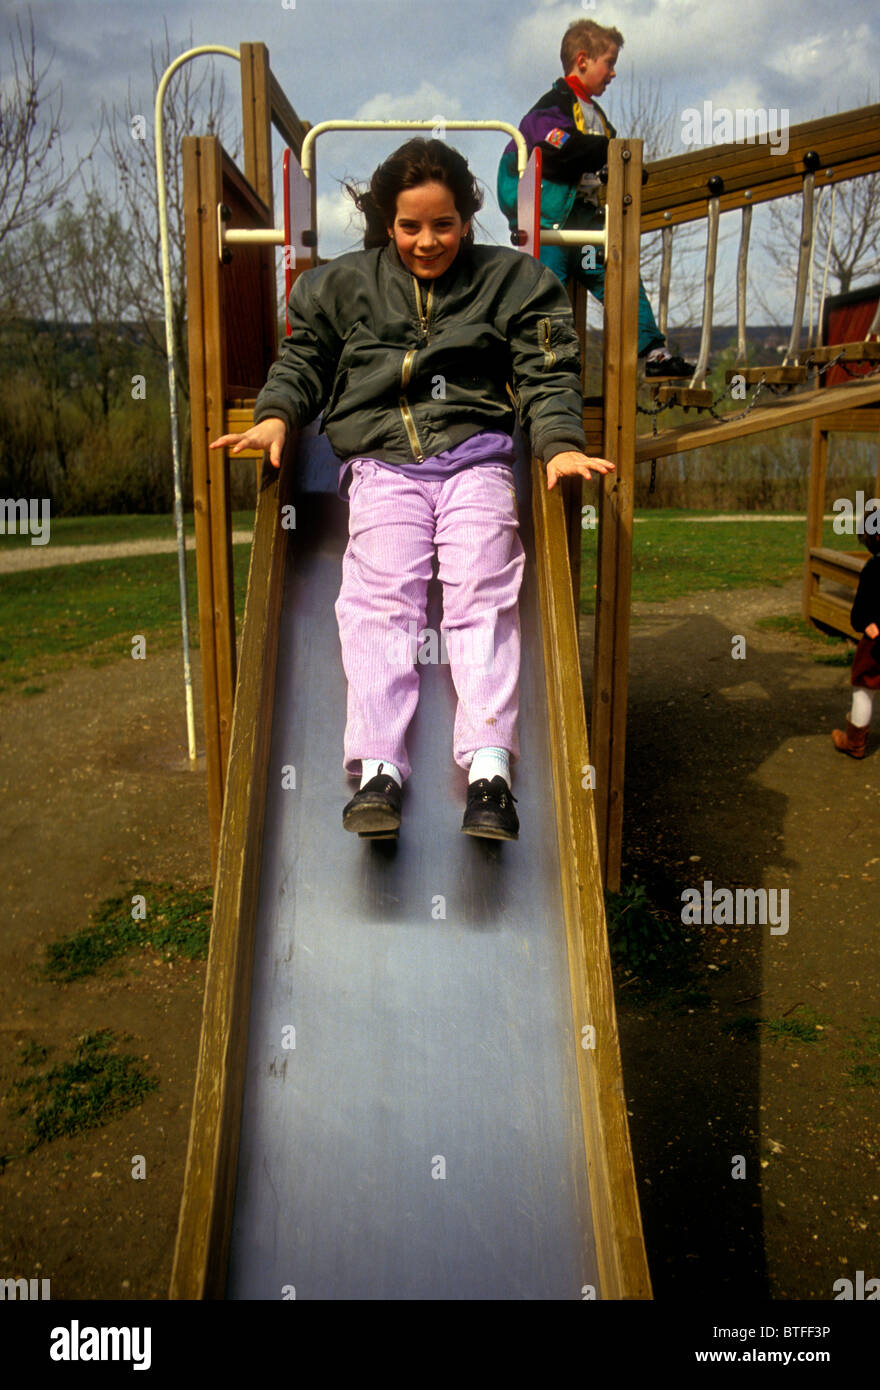 1, one, French girl, French, girl, young girl, female child, child, sliding down, sliding pond, playground, Verneuil - Stock Image